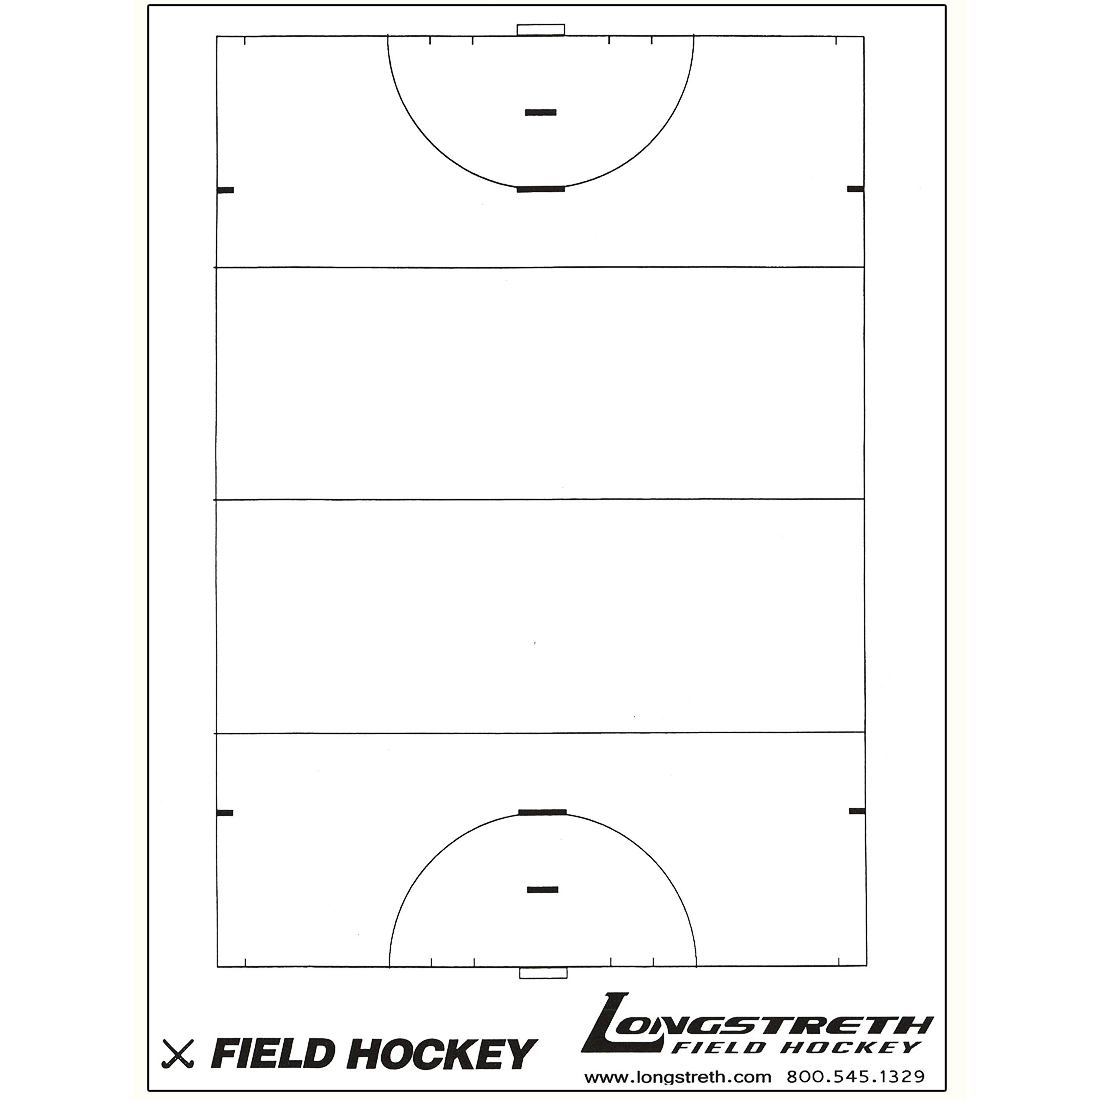 hockey player diagram wiring diagrams for lighting circuits field tablet and